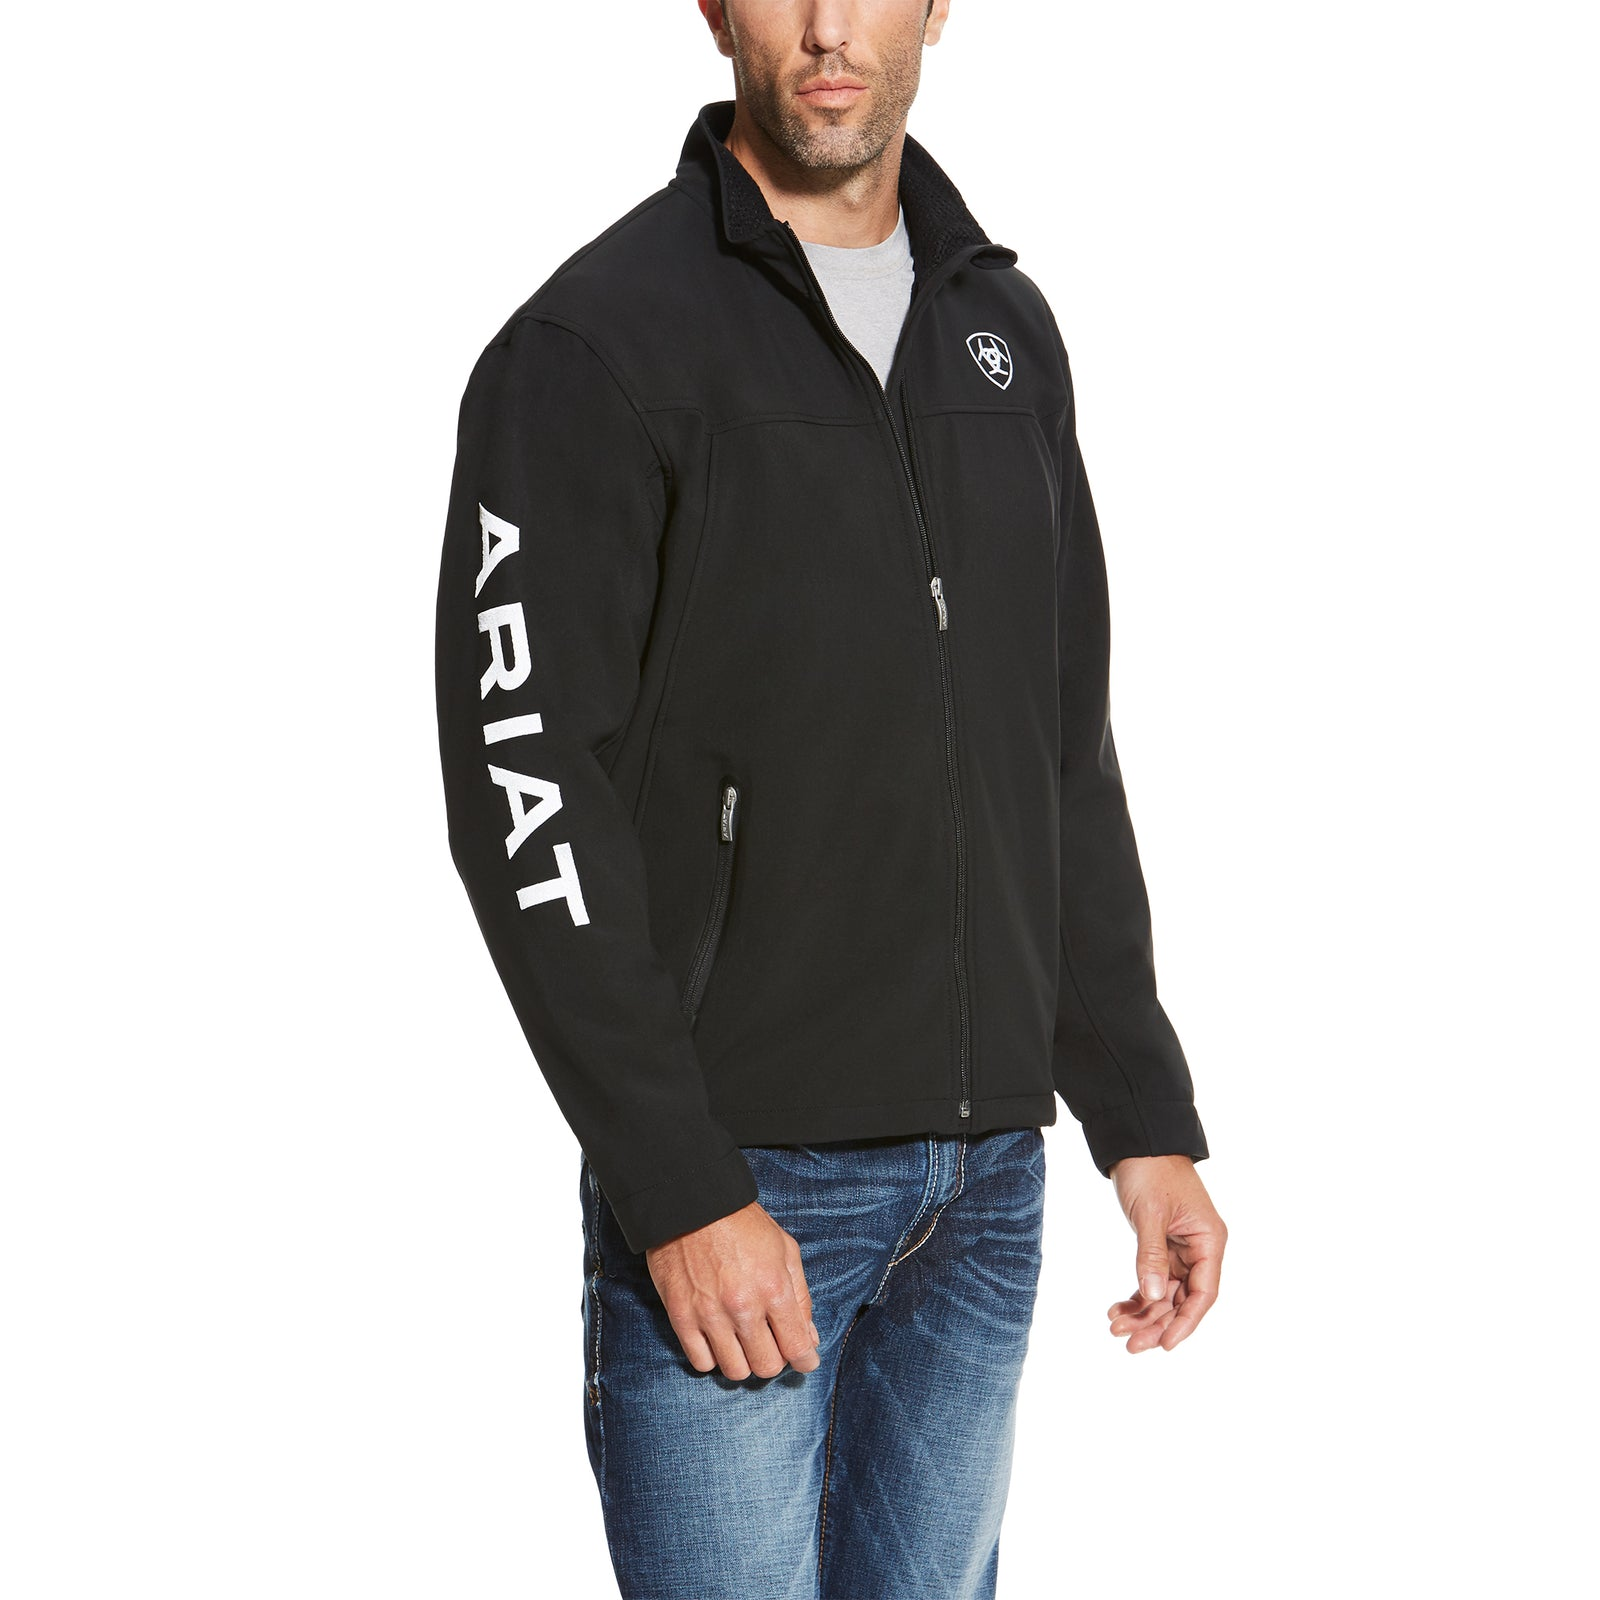 Ariat Men's New Team Soft Shell Black Jacket